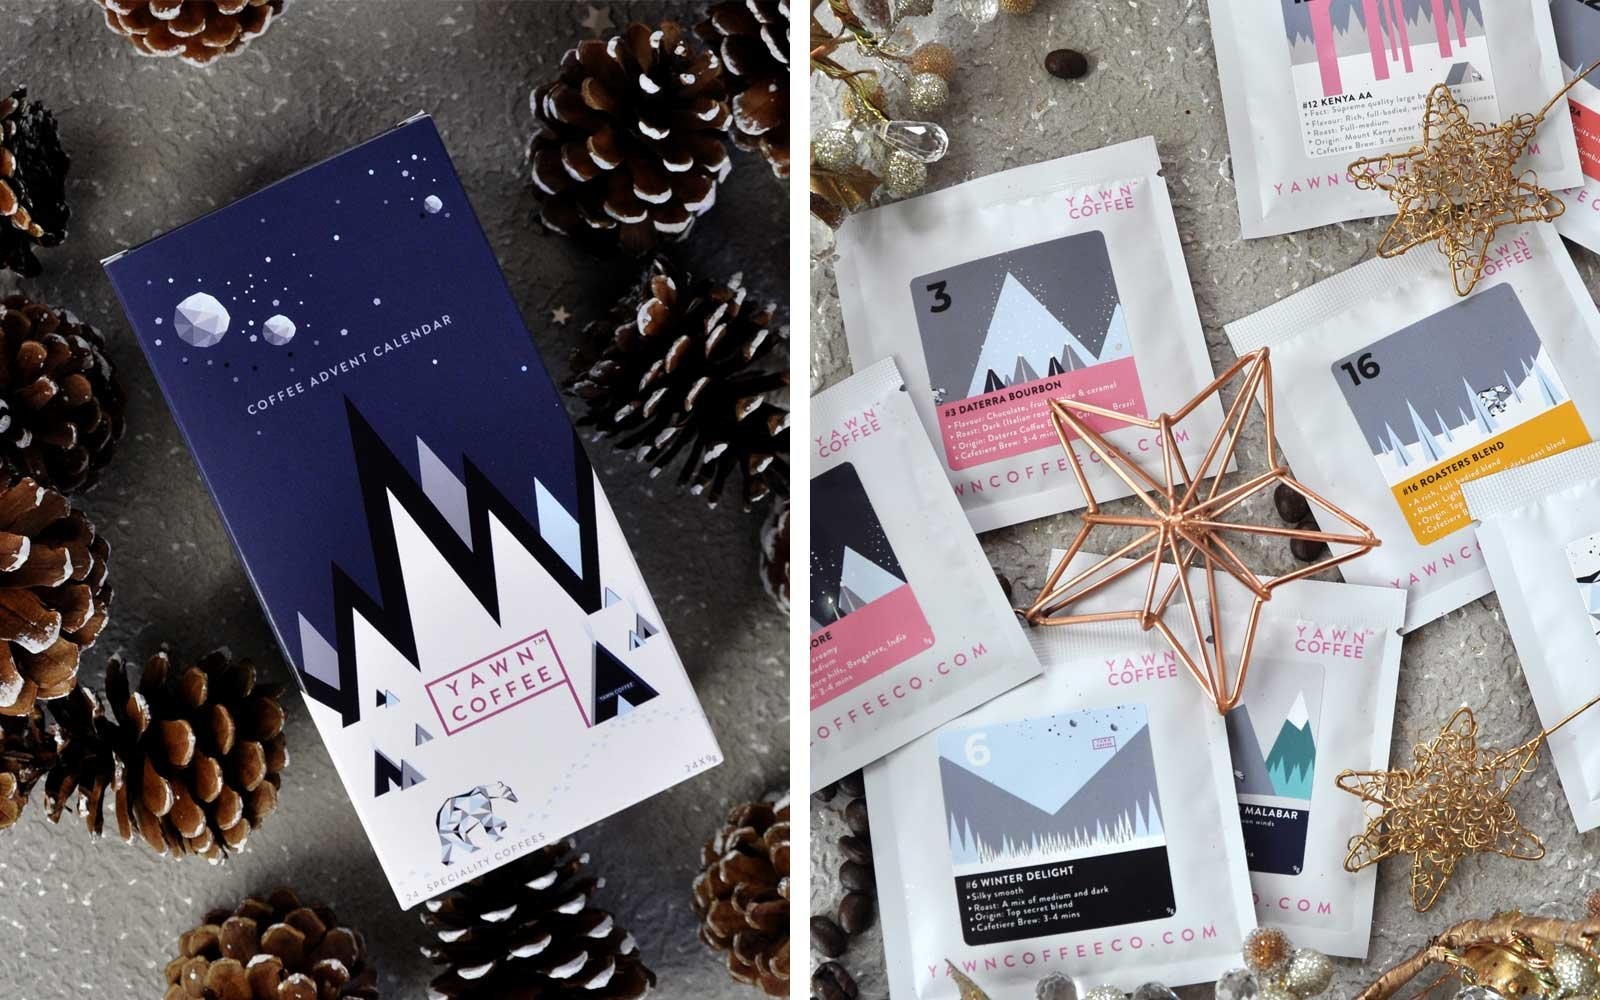 These coffee advent calendars will make the holiday season merry and caffeinated